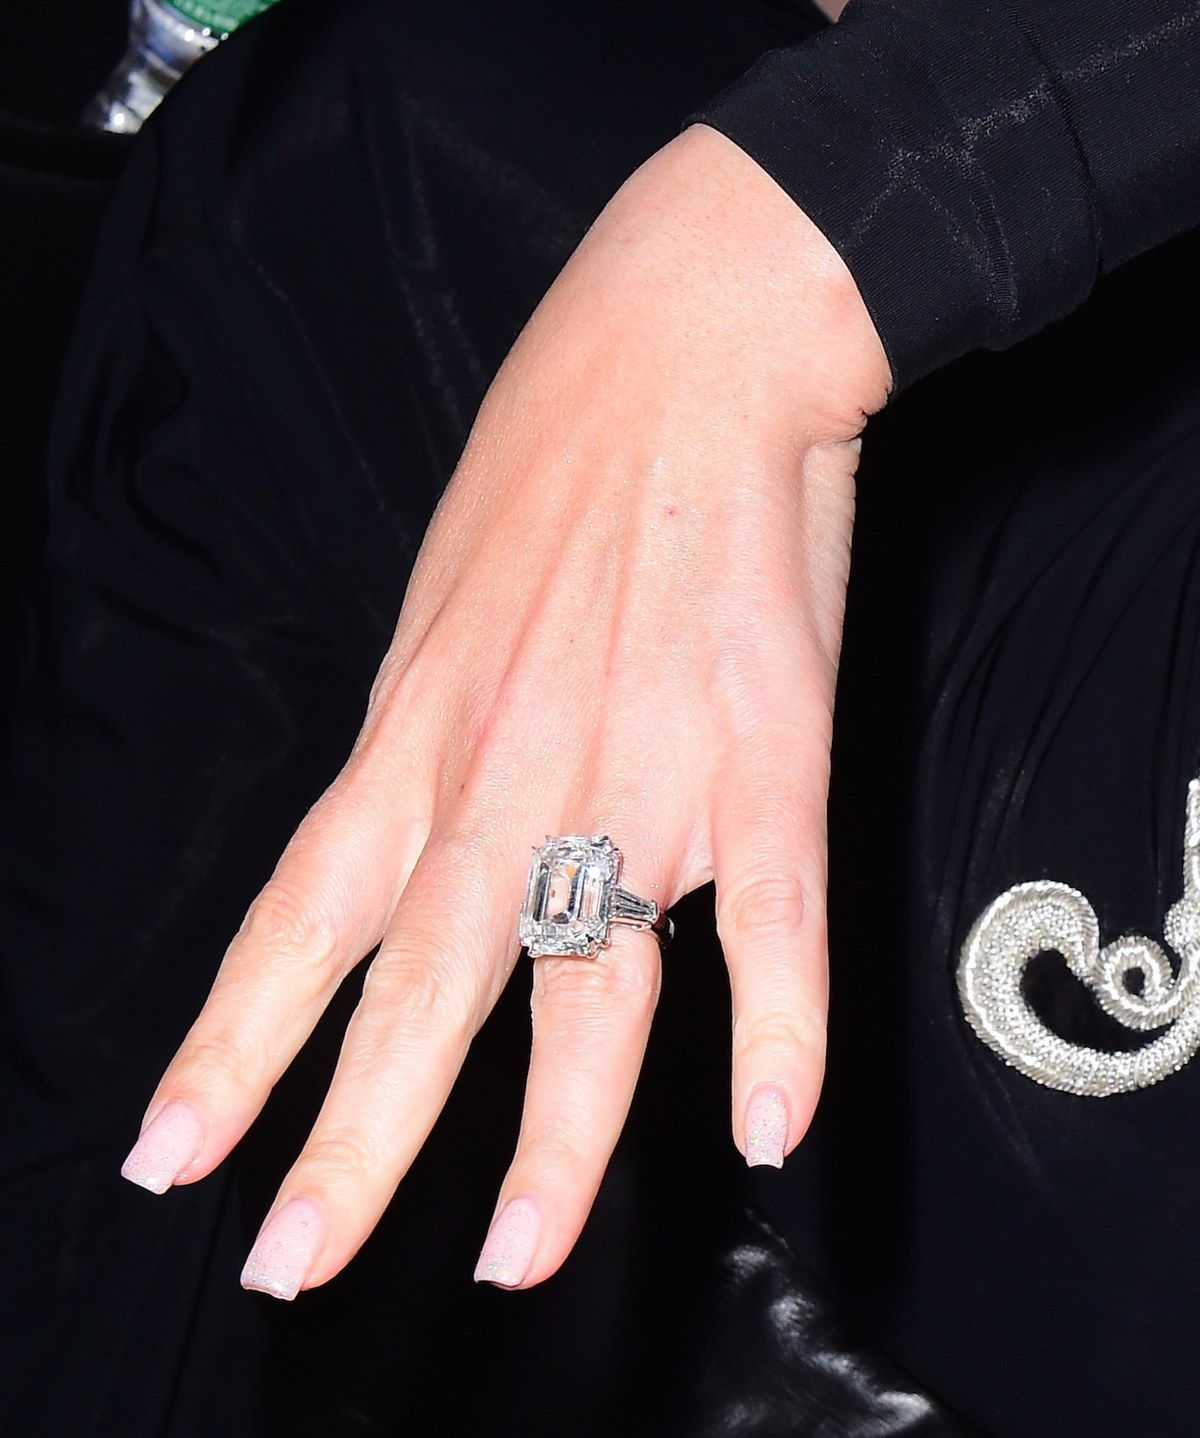 The couple: Mariah Carey and James Packer The ring: A 35-carat ...